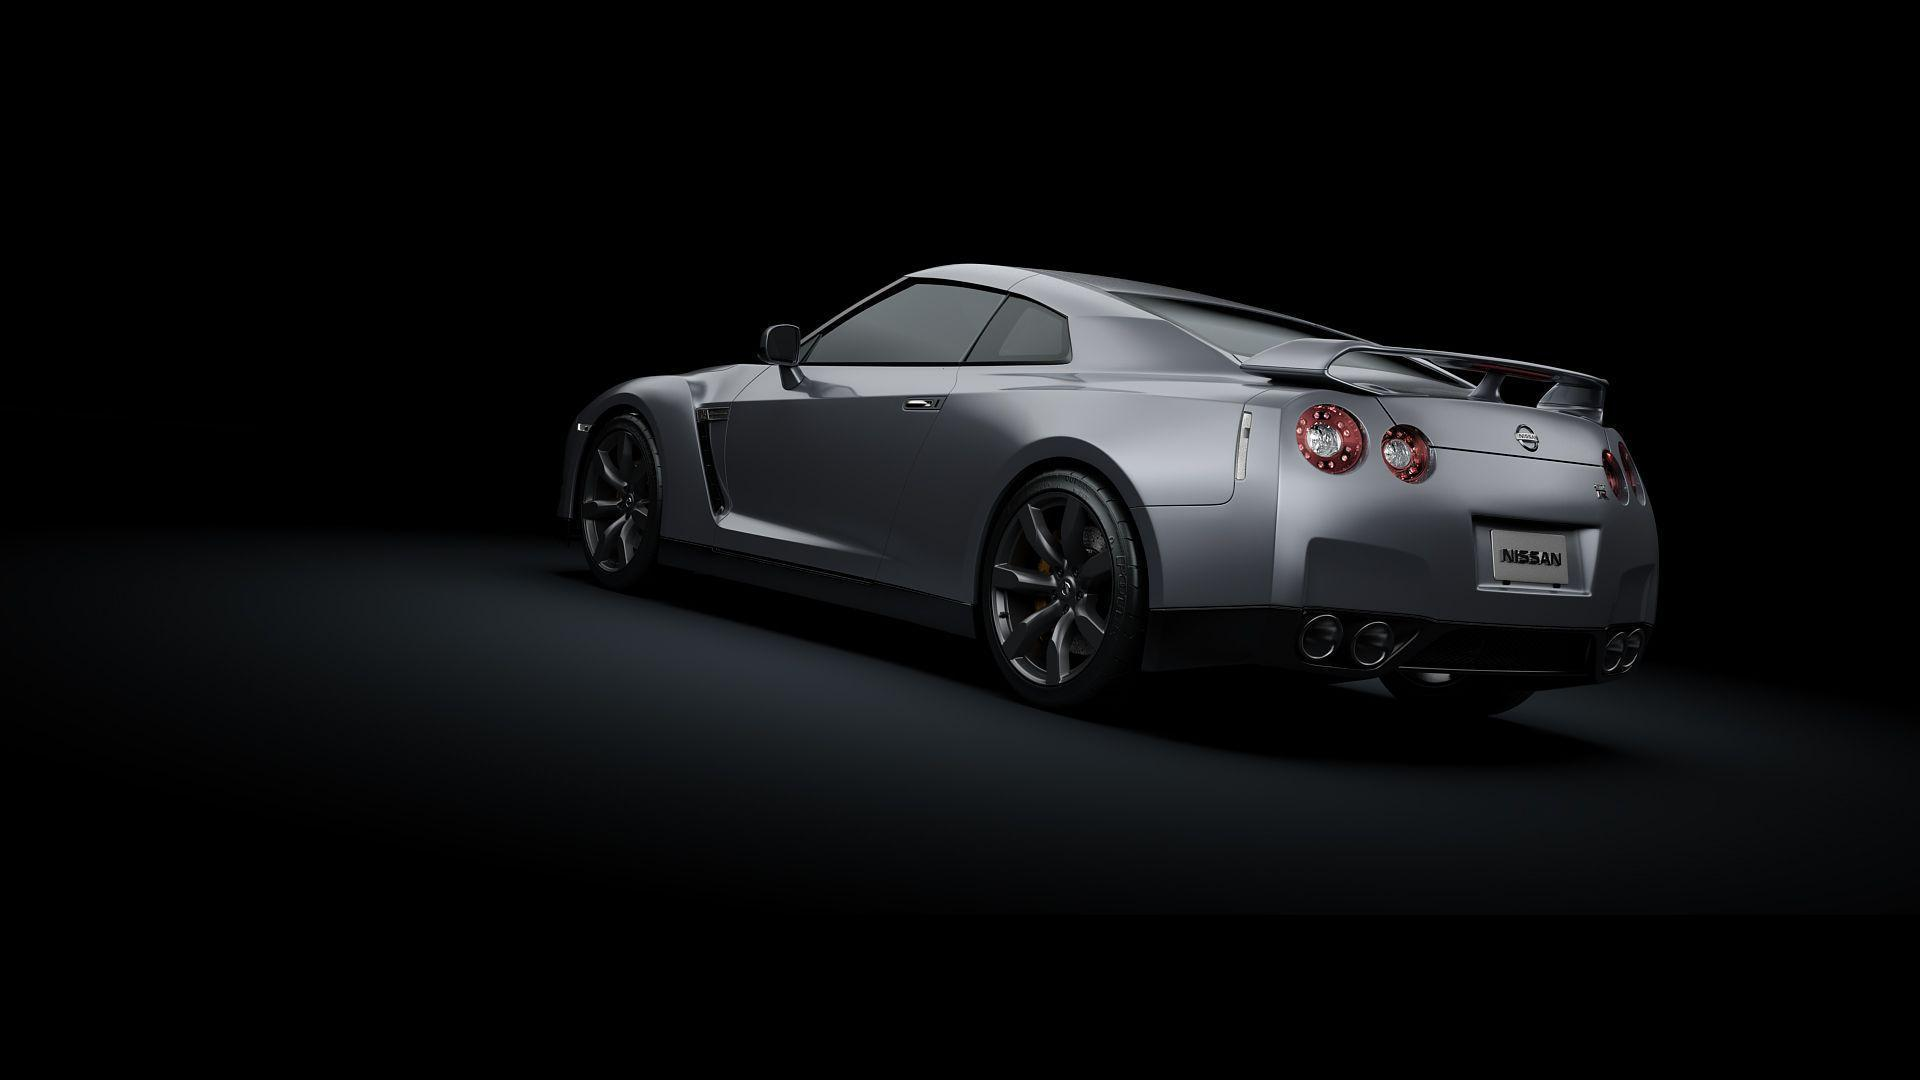 The Nissan GT-R Wallpaper